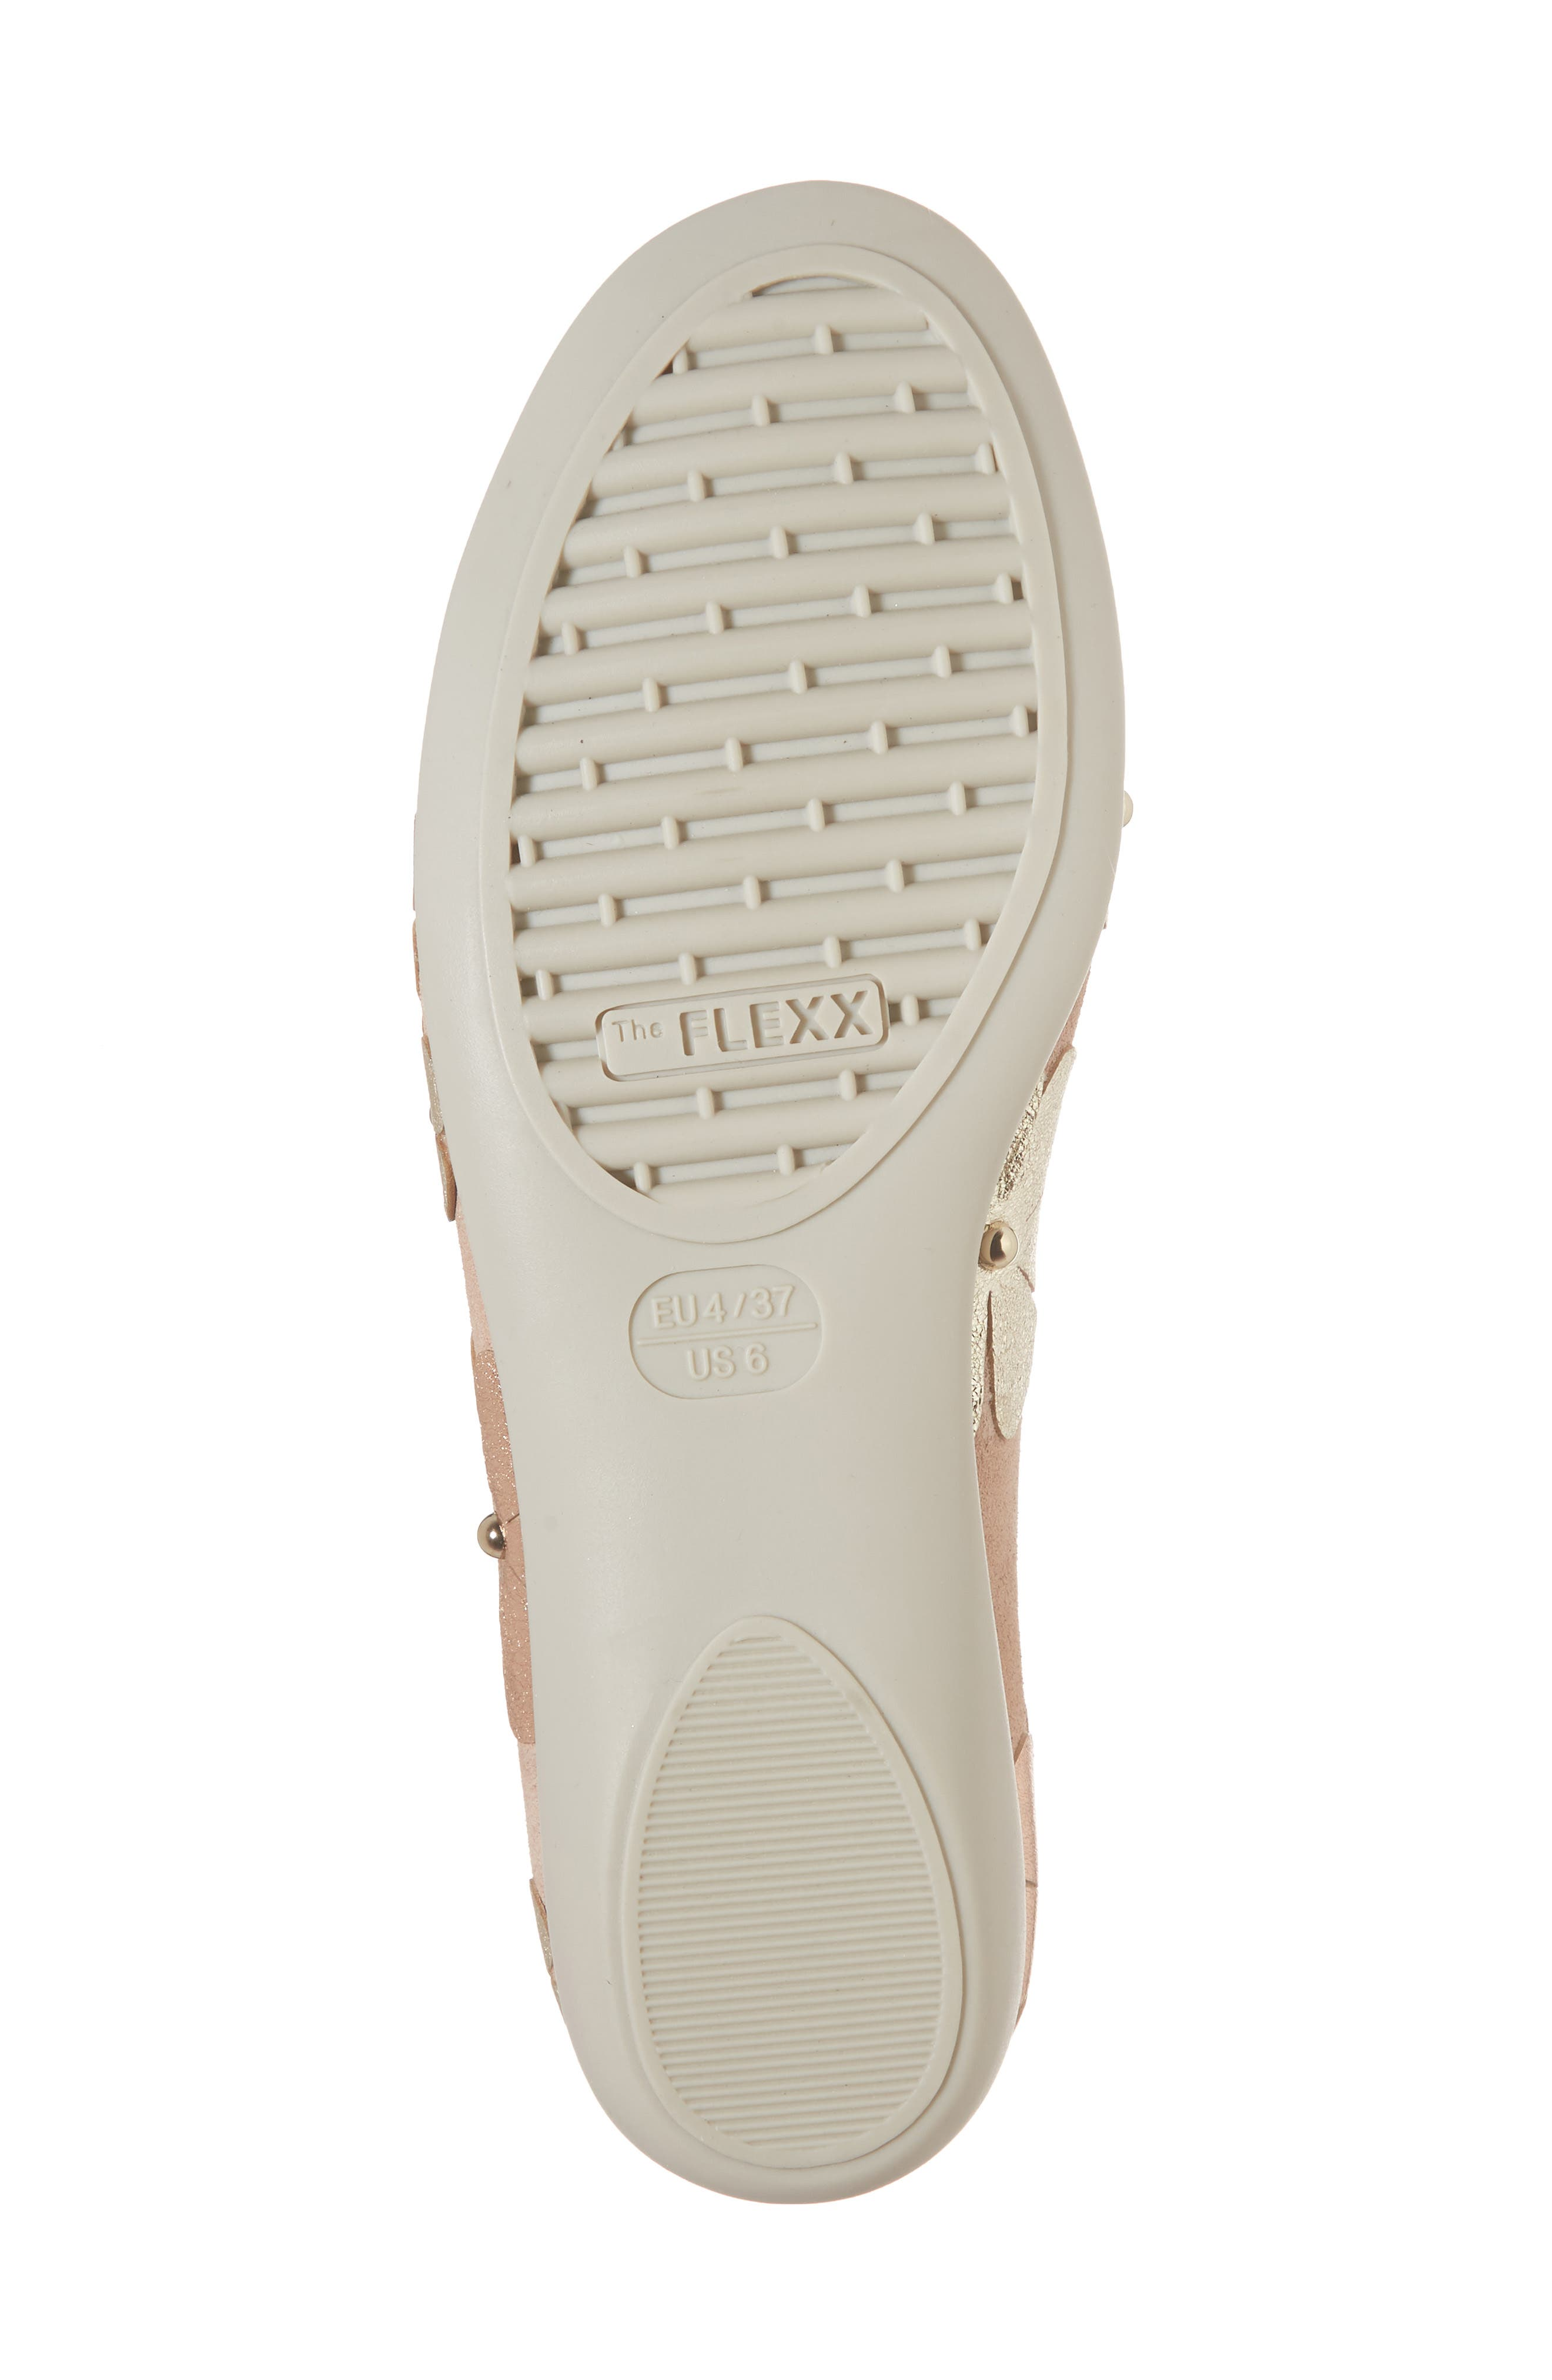 Miss Hippie Ballerina Flat,                             Alternate thumbnail 6, color,                             ROSE GOLD LEATHER